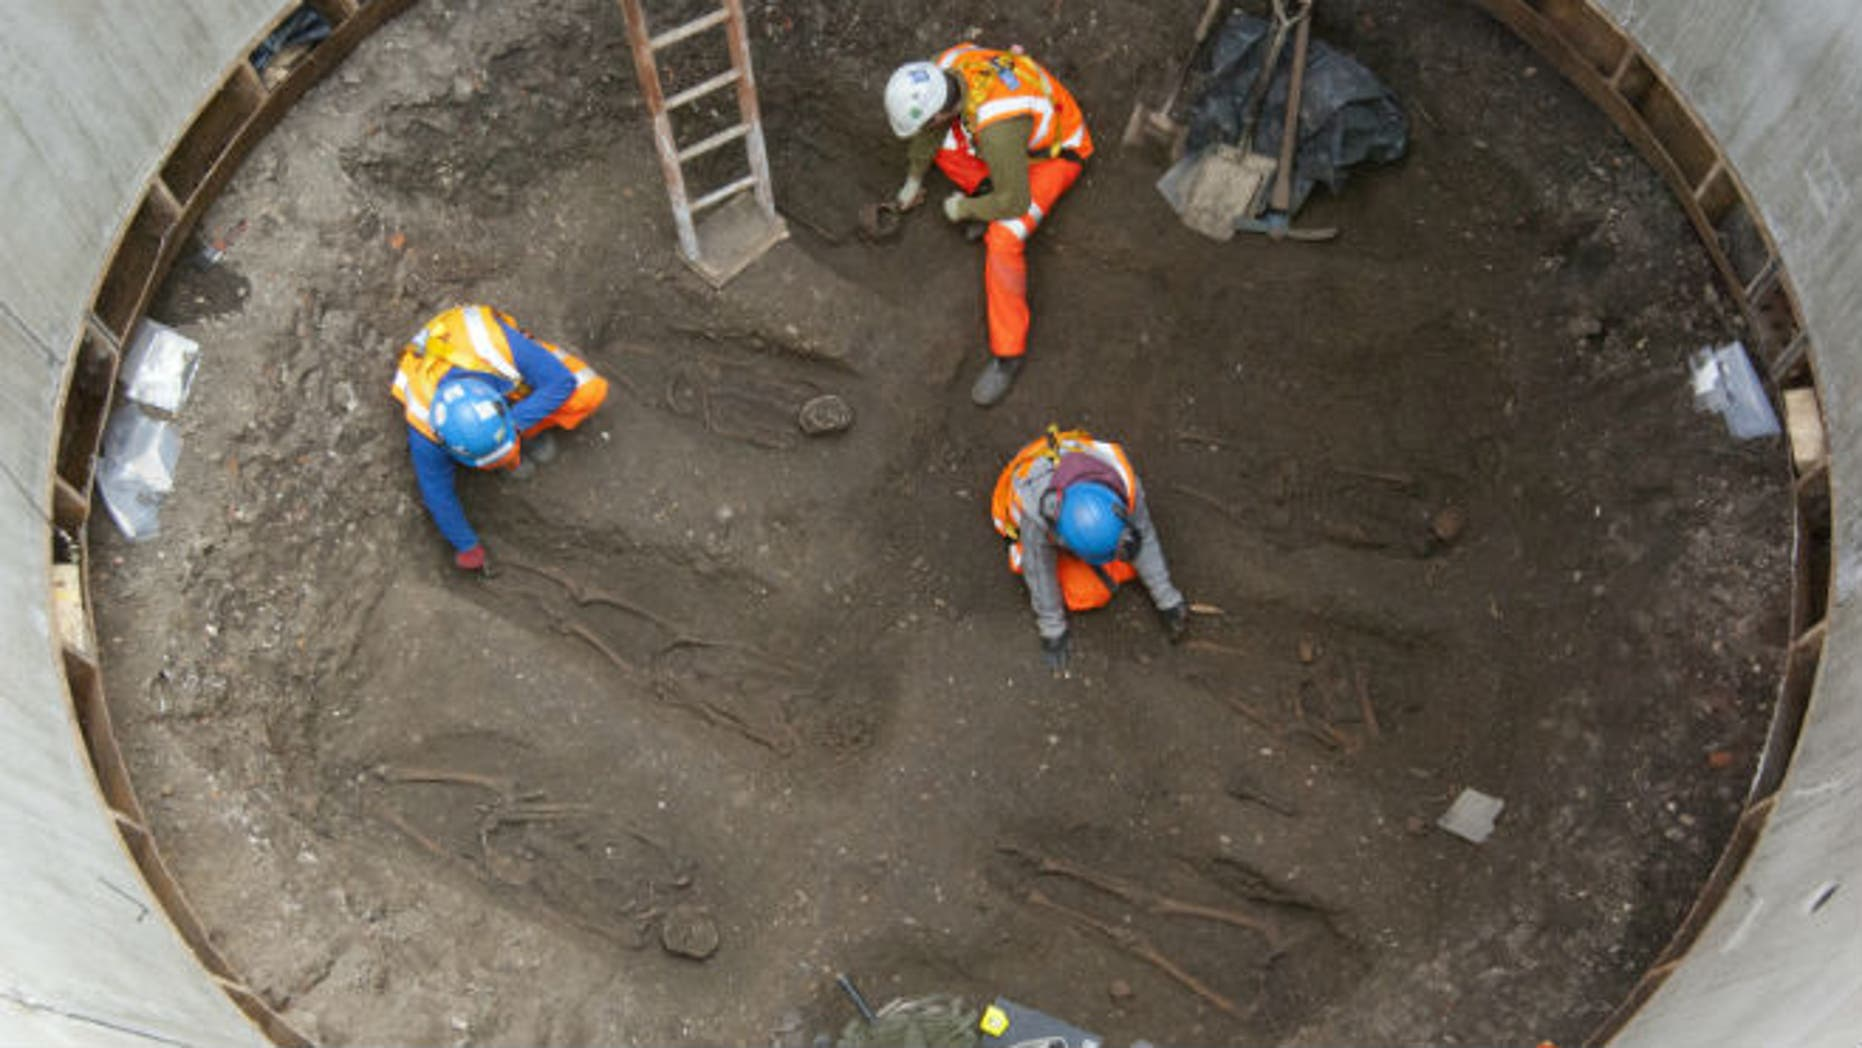 """Archaeologists work on unearthed skeletons in the Farringdon area of London in this undated handout photograph released March 15, 2013. Archaeologists said on Friday they had found a graveyard during excavations for a rail project in London which might hold the remains of some 50,000 people killed by the """"Black Death"""" plague more than 650 years ago. REUTERS/Crossrail/Handout"""